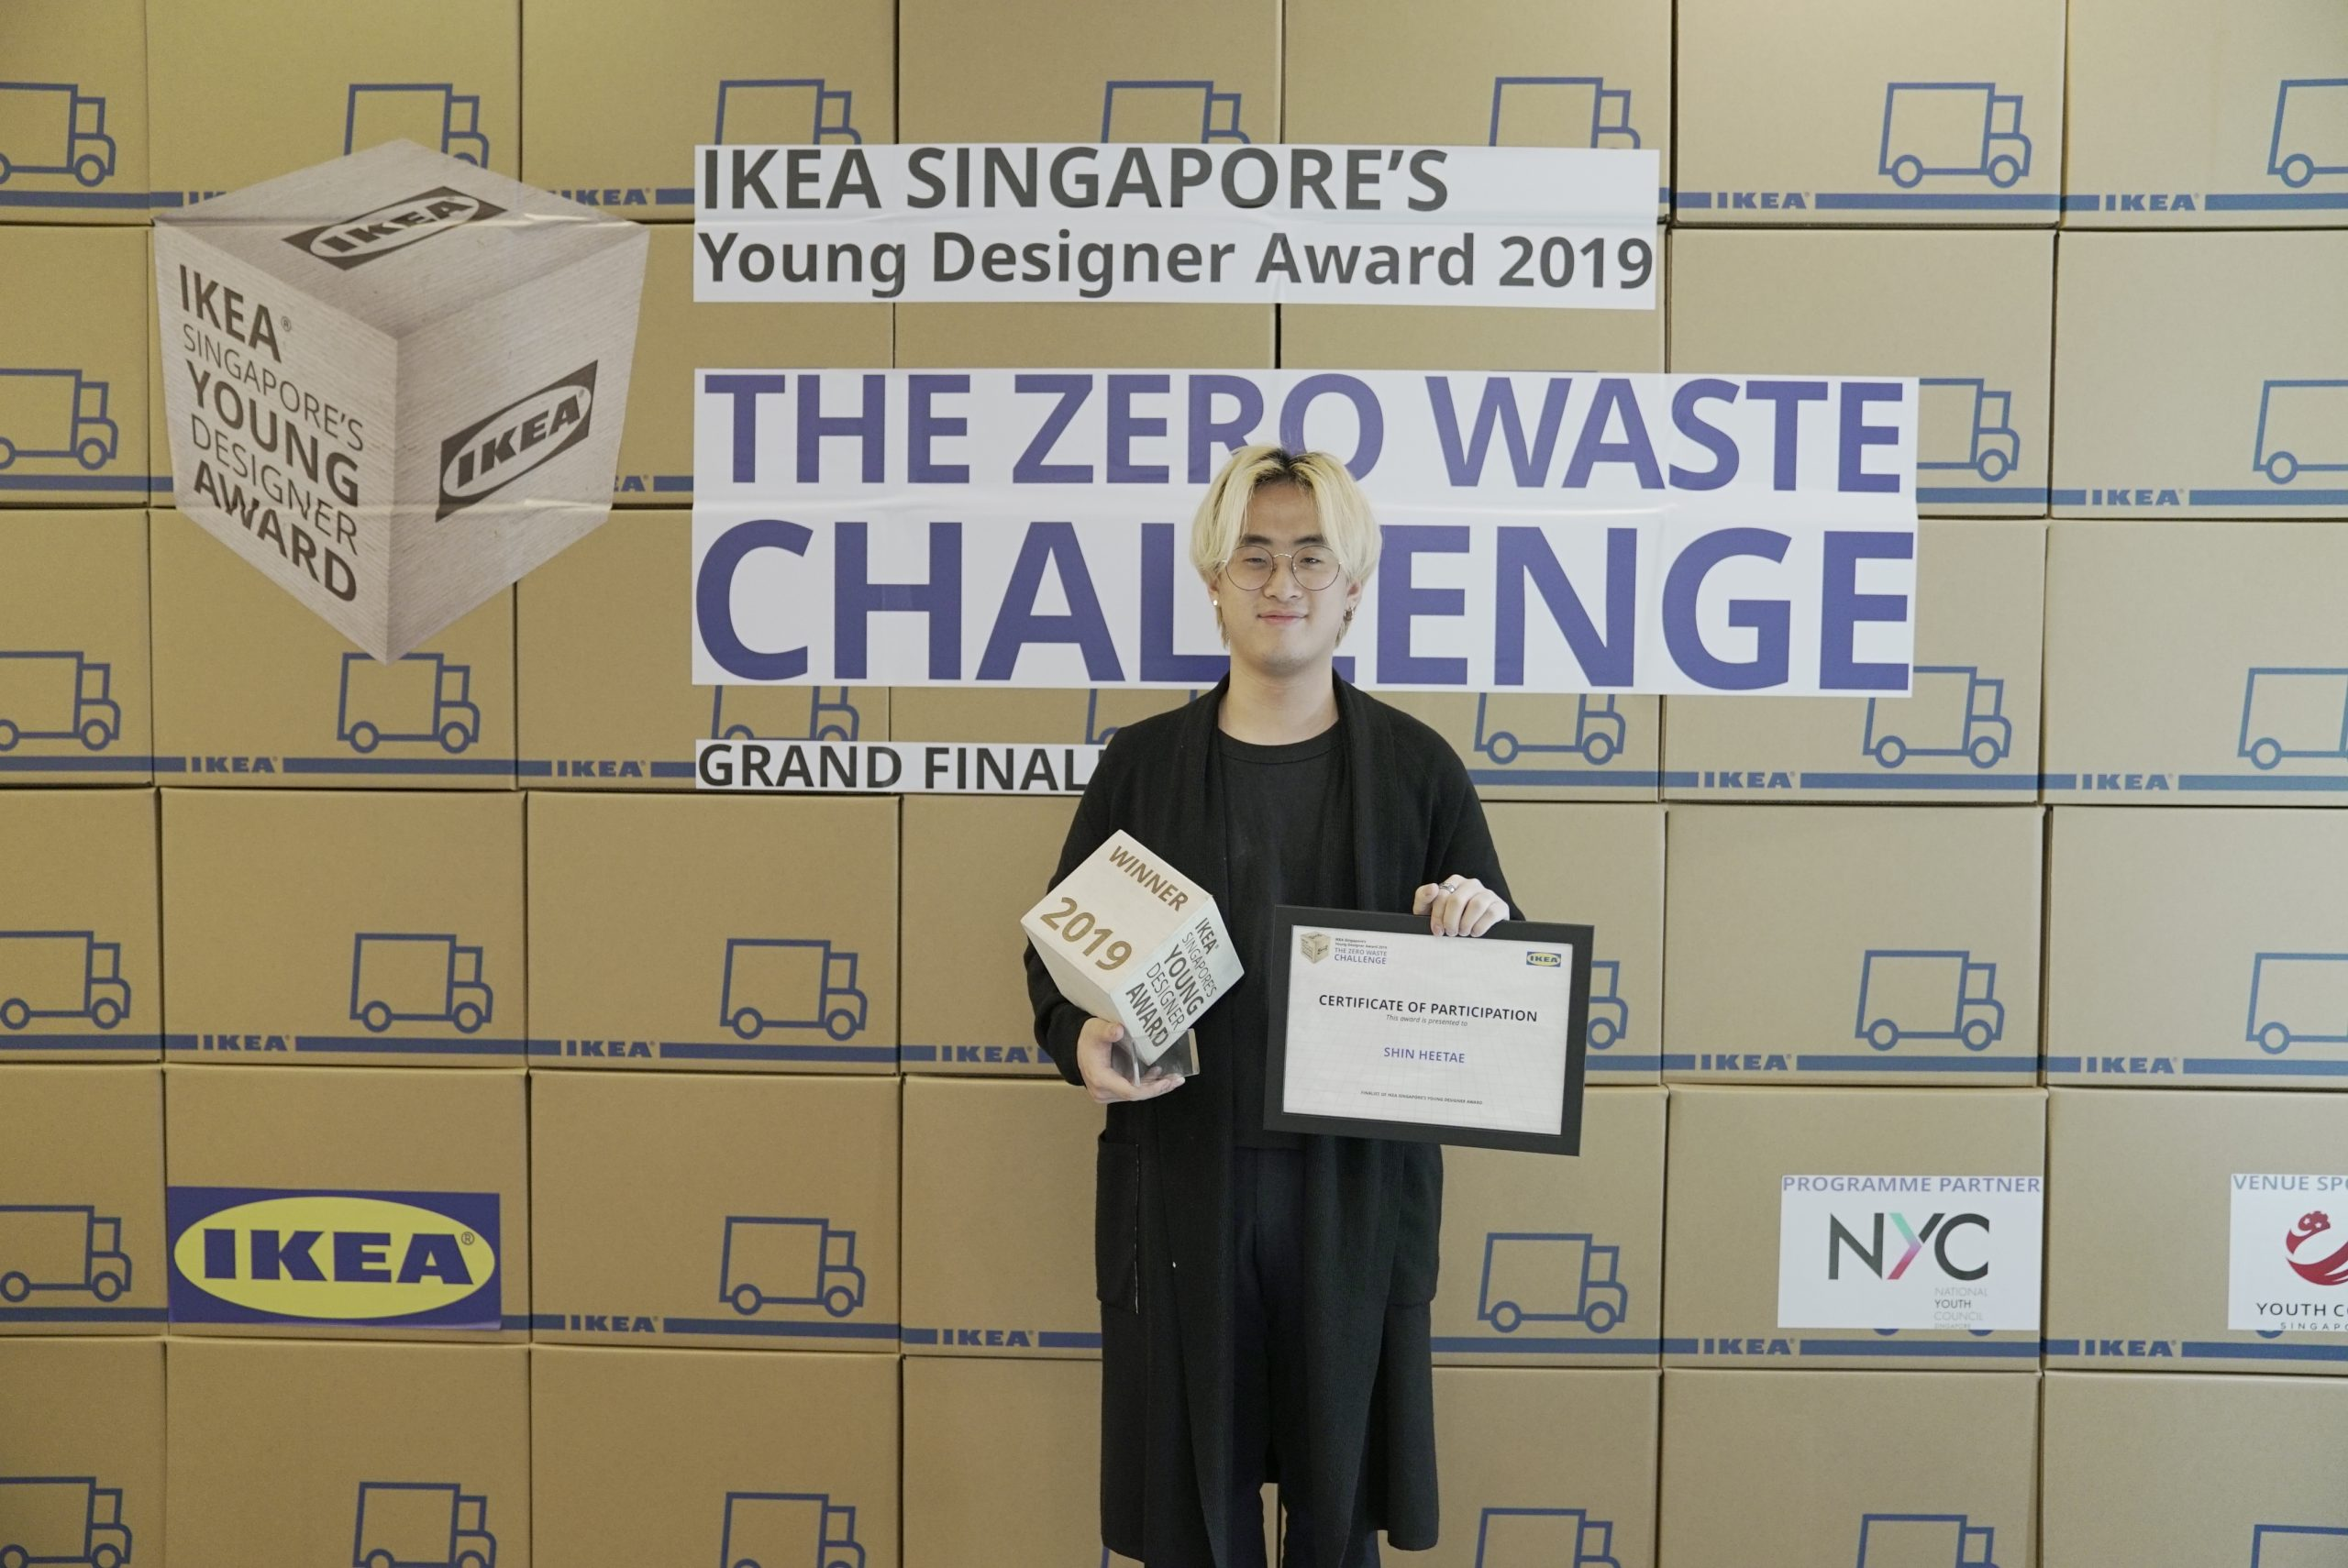 winner of ikea singapore young designer award 2019 raffles product designer shin hee tae